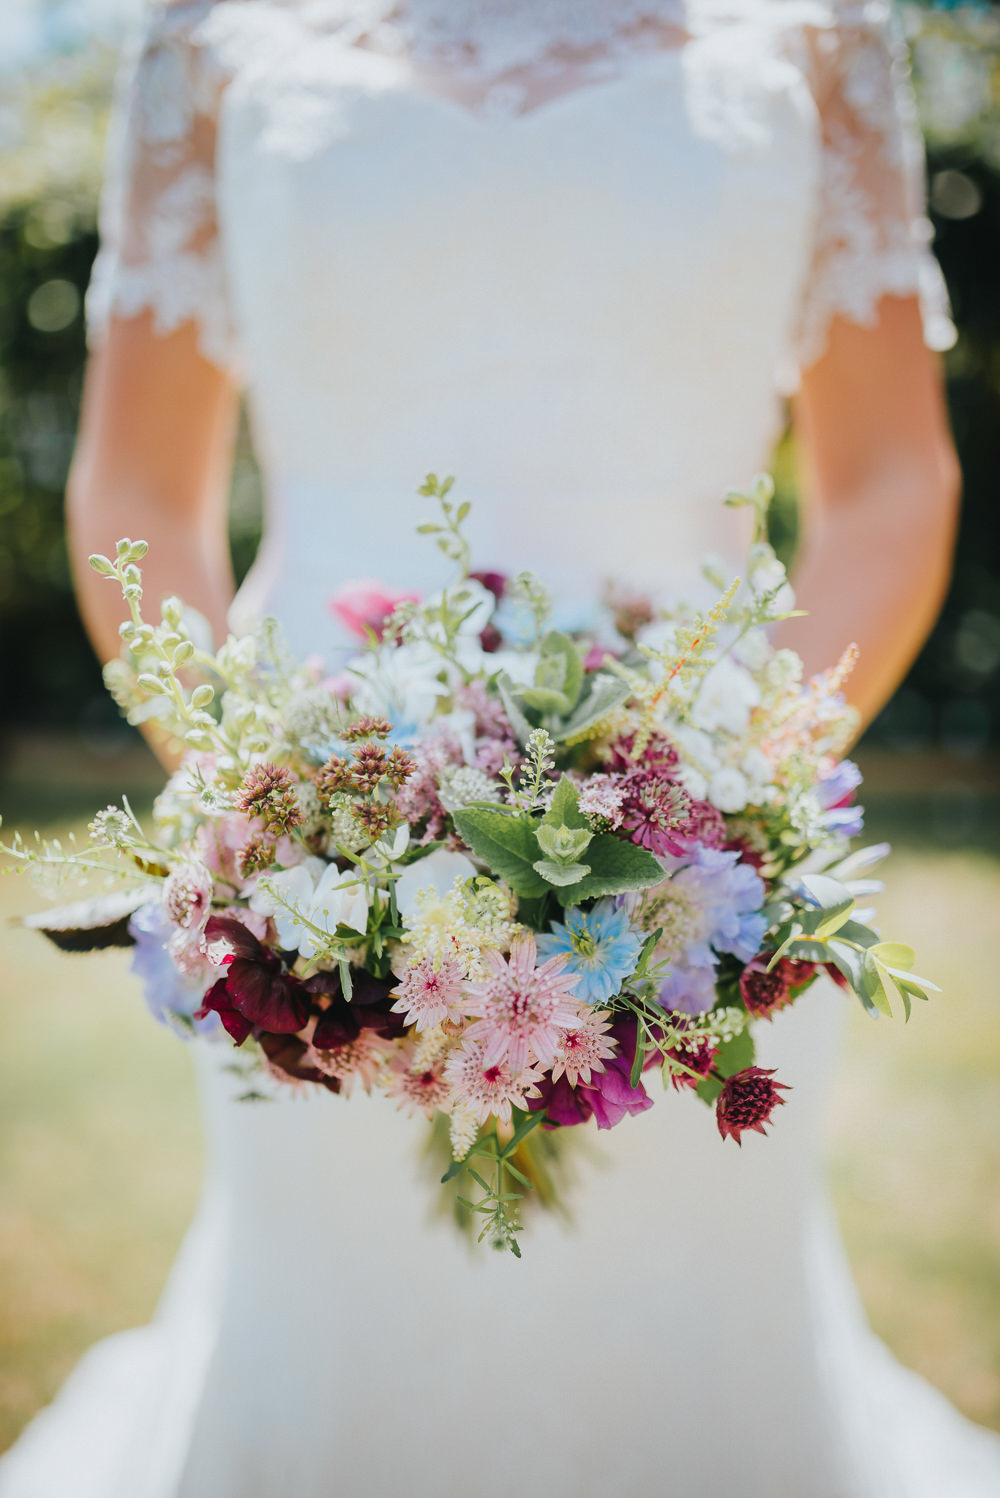 Bride Bridal Bouquet Wildflower Meadow Flowers Kittisford Barton Wedding Joab Smith Photography